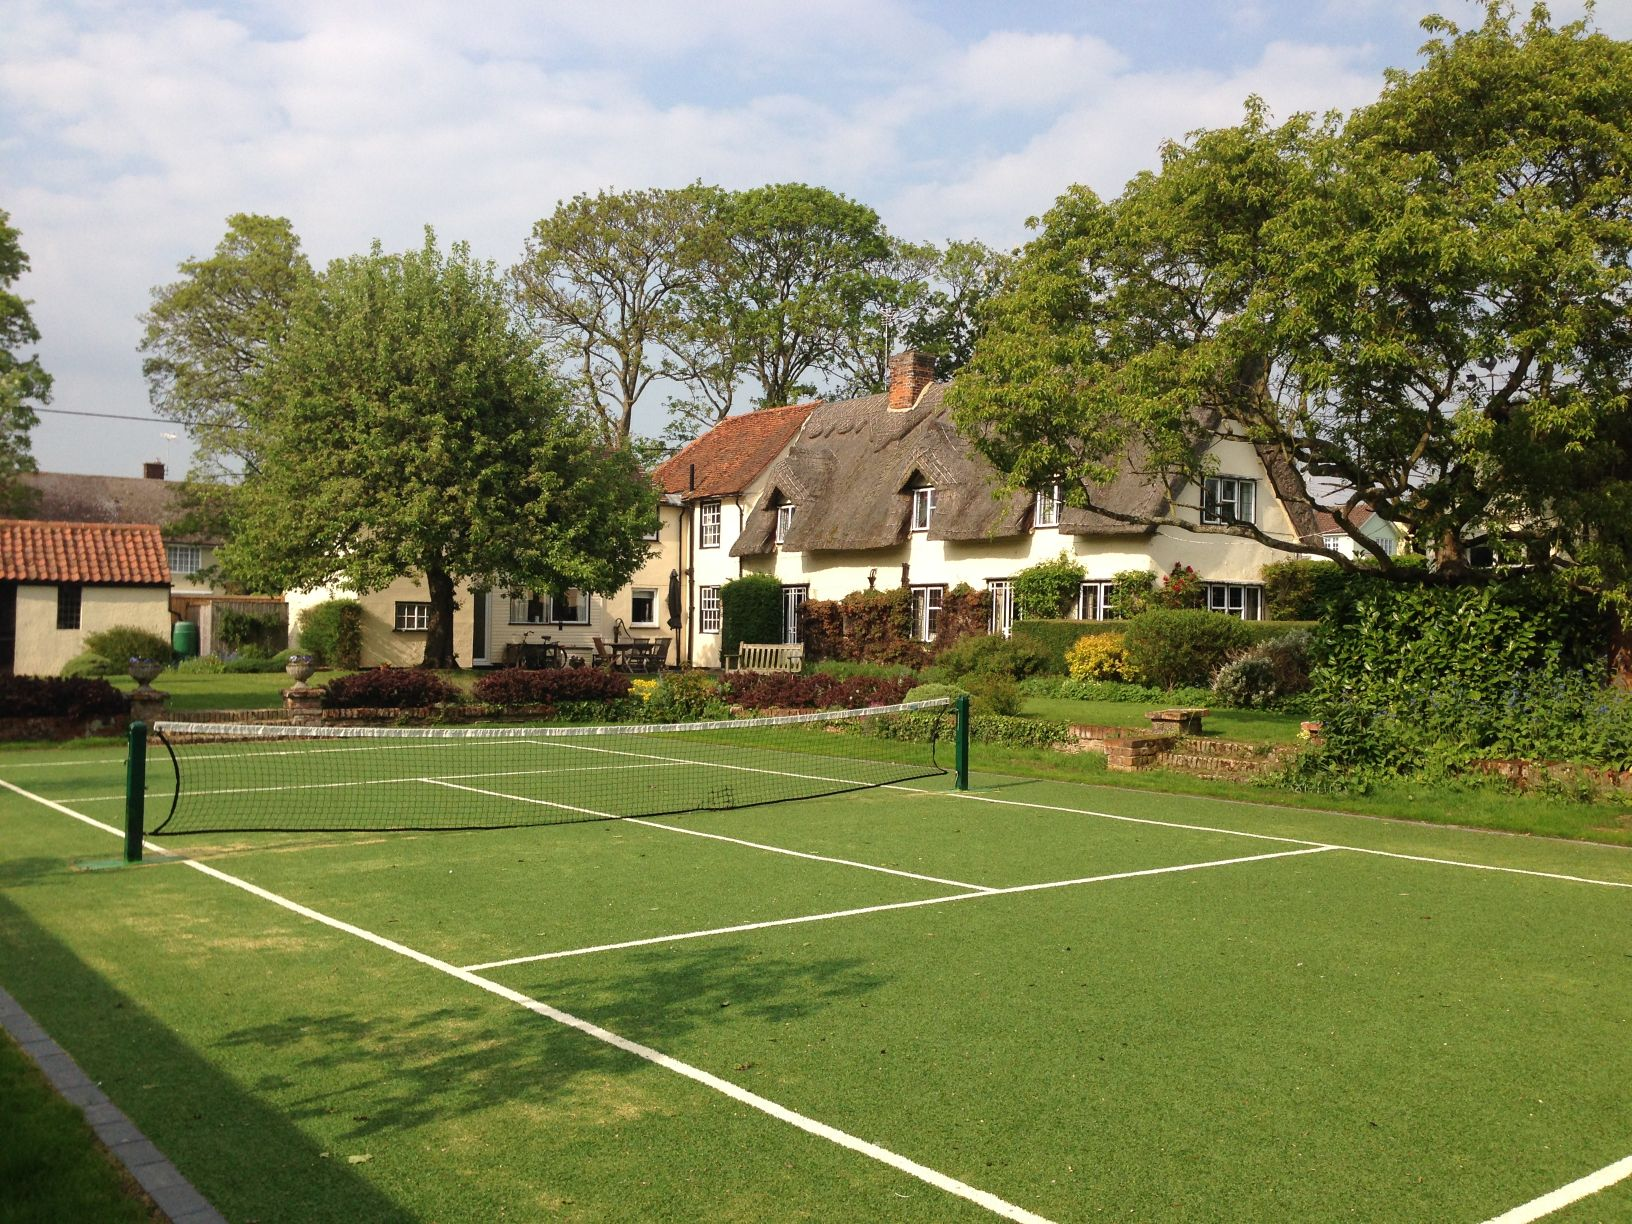 ETC Sports Surfaces specialise in designing, installing and maintaining all types of tennis courts, from residential to professional